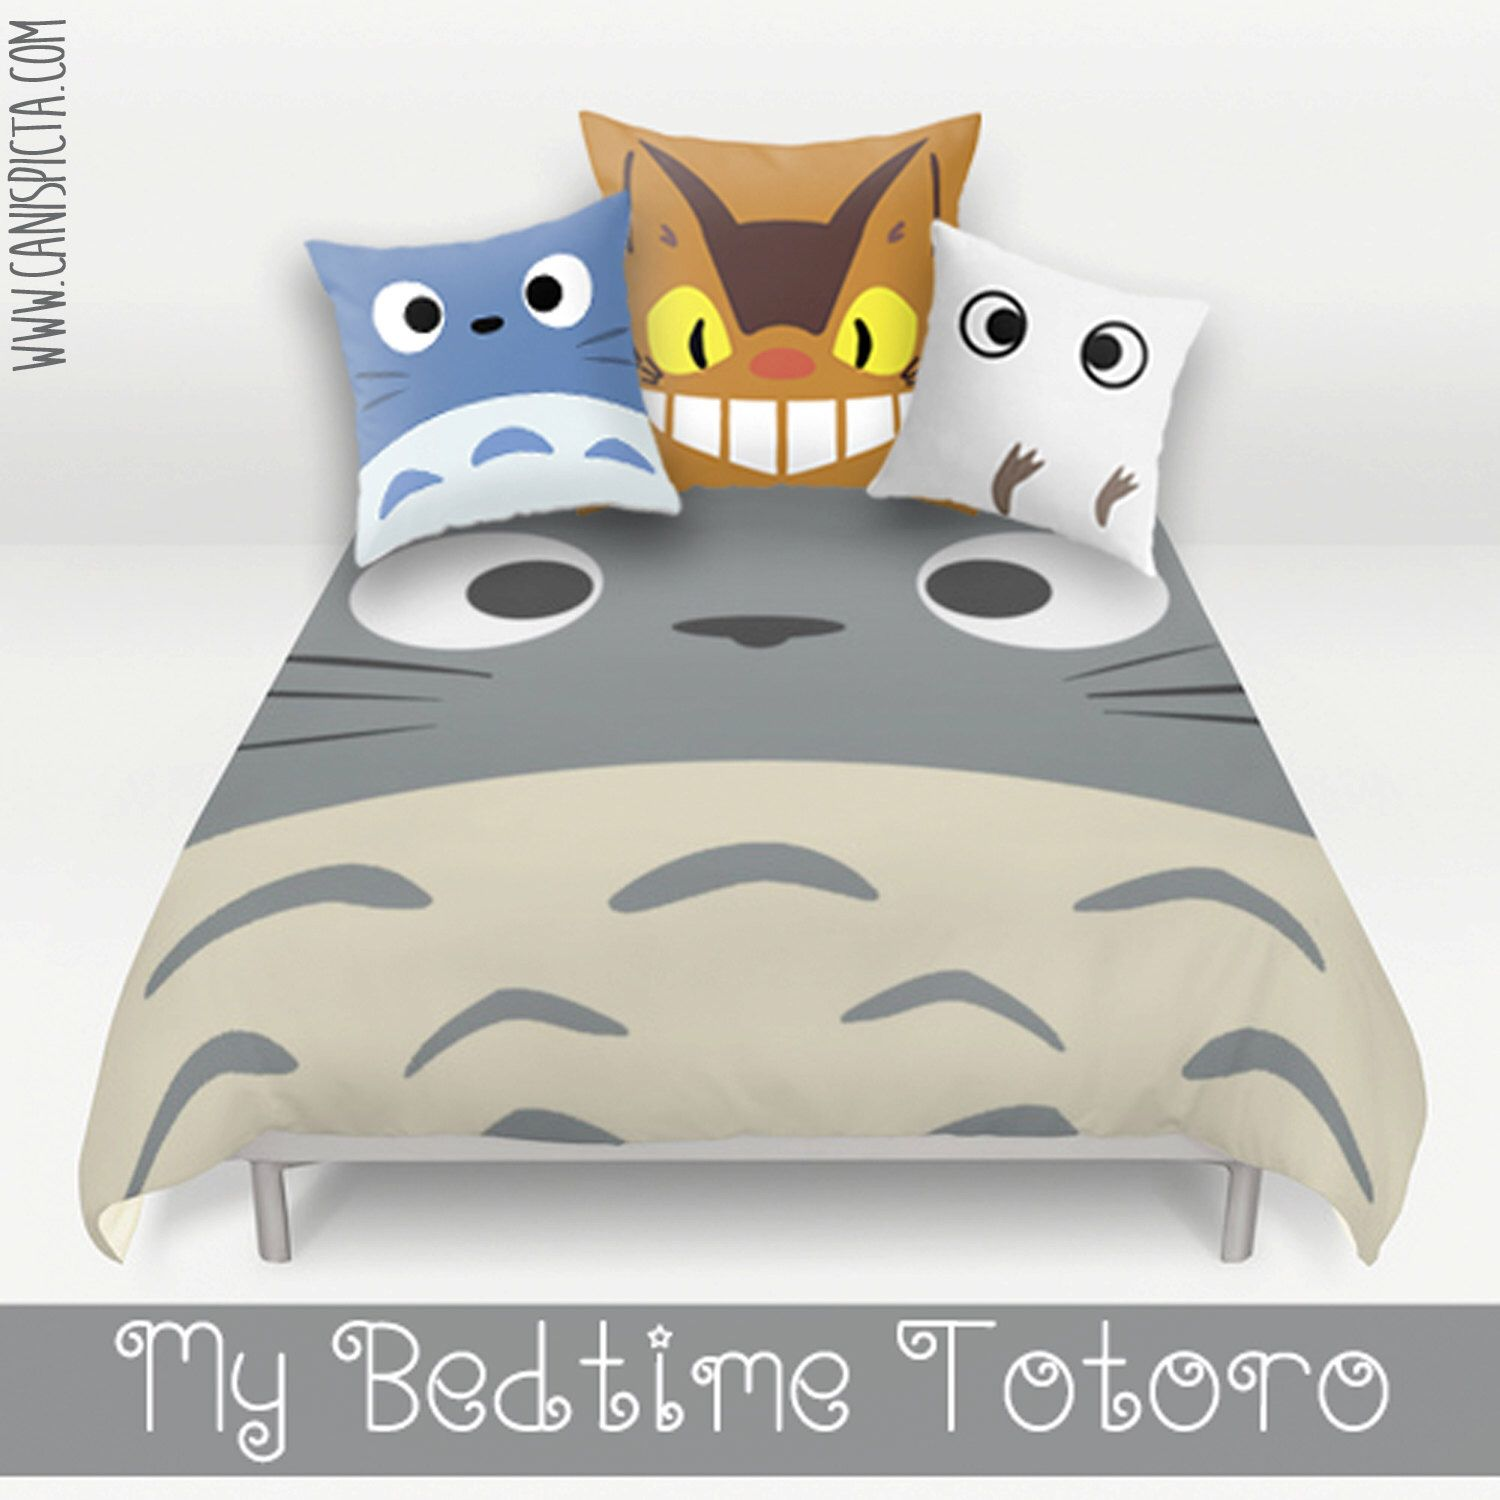 Pcs peter pan bedding set duvet cover fitted sheet pillow case worl - Totoro Bed Set Duvet Bedding Pillow Cover Kawaii My Neighbor Catbus Bedroom Decor Decorative Grey Blue